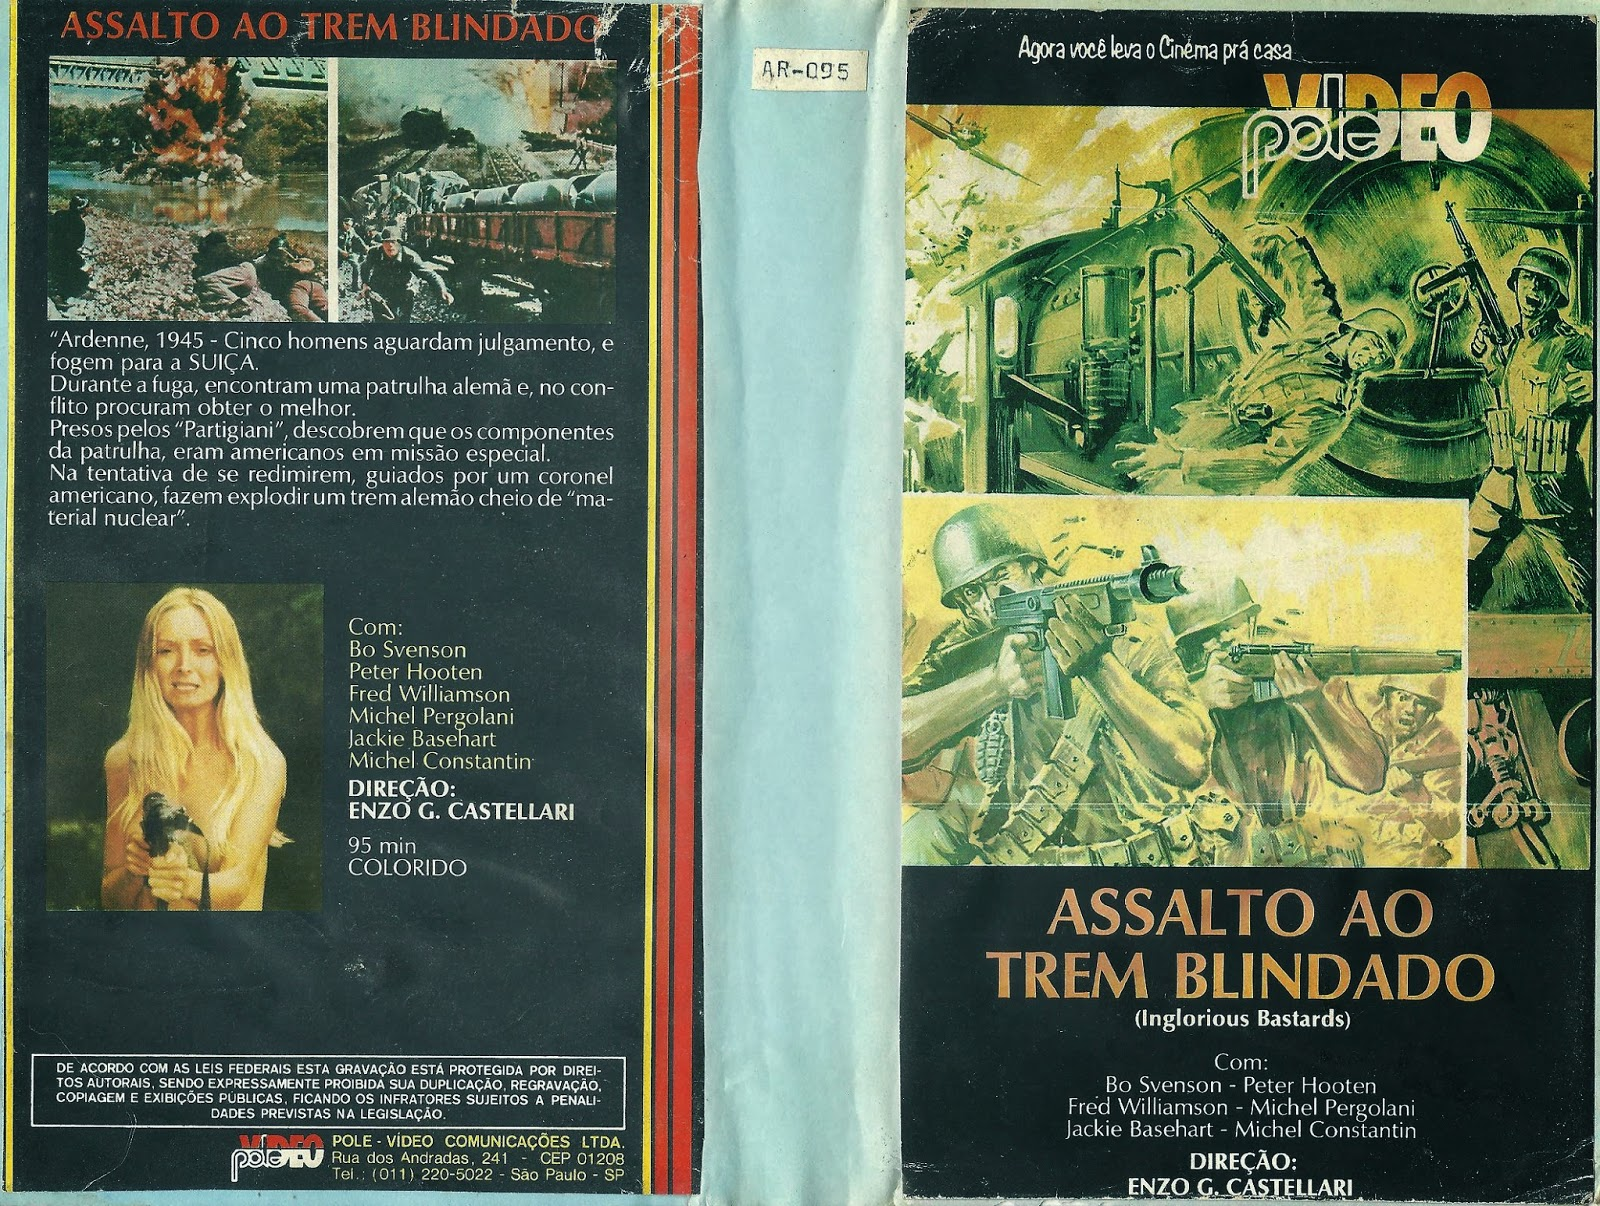 Clube do vhs Mania: ASSALTO AO TREM BLINDADO